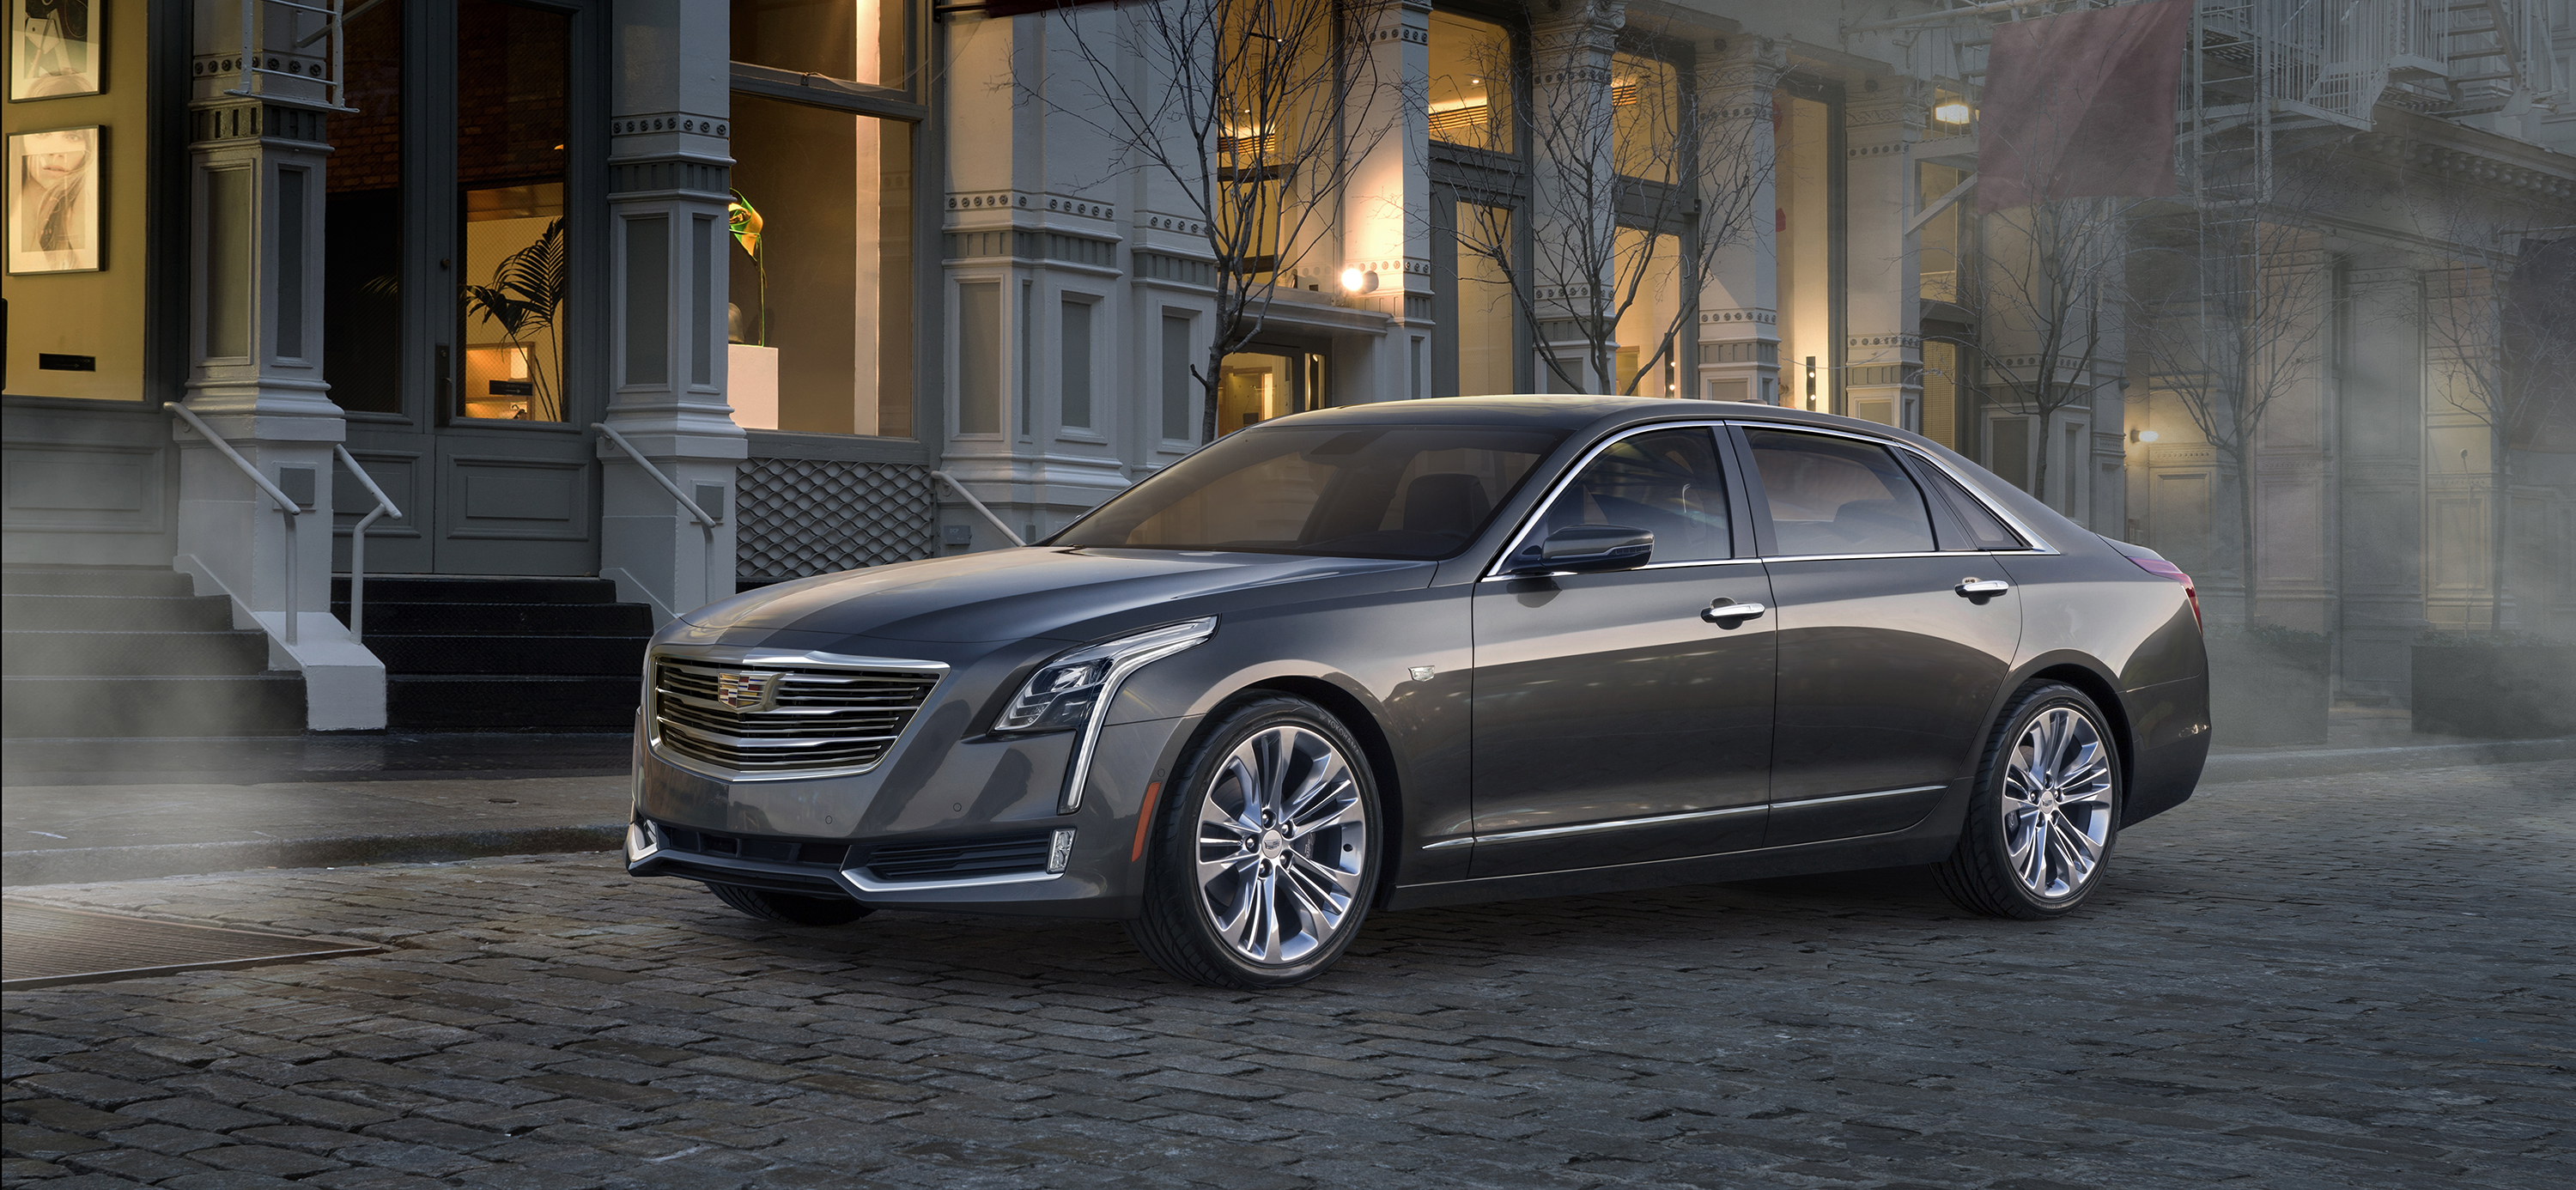 news h drive sedan cadillac new westchester in hybrid and plug york luxury ny first may county of city